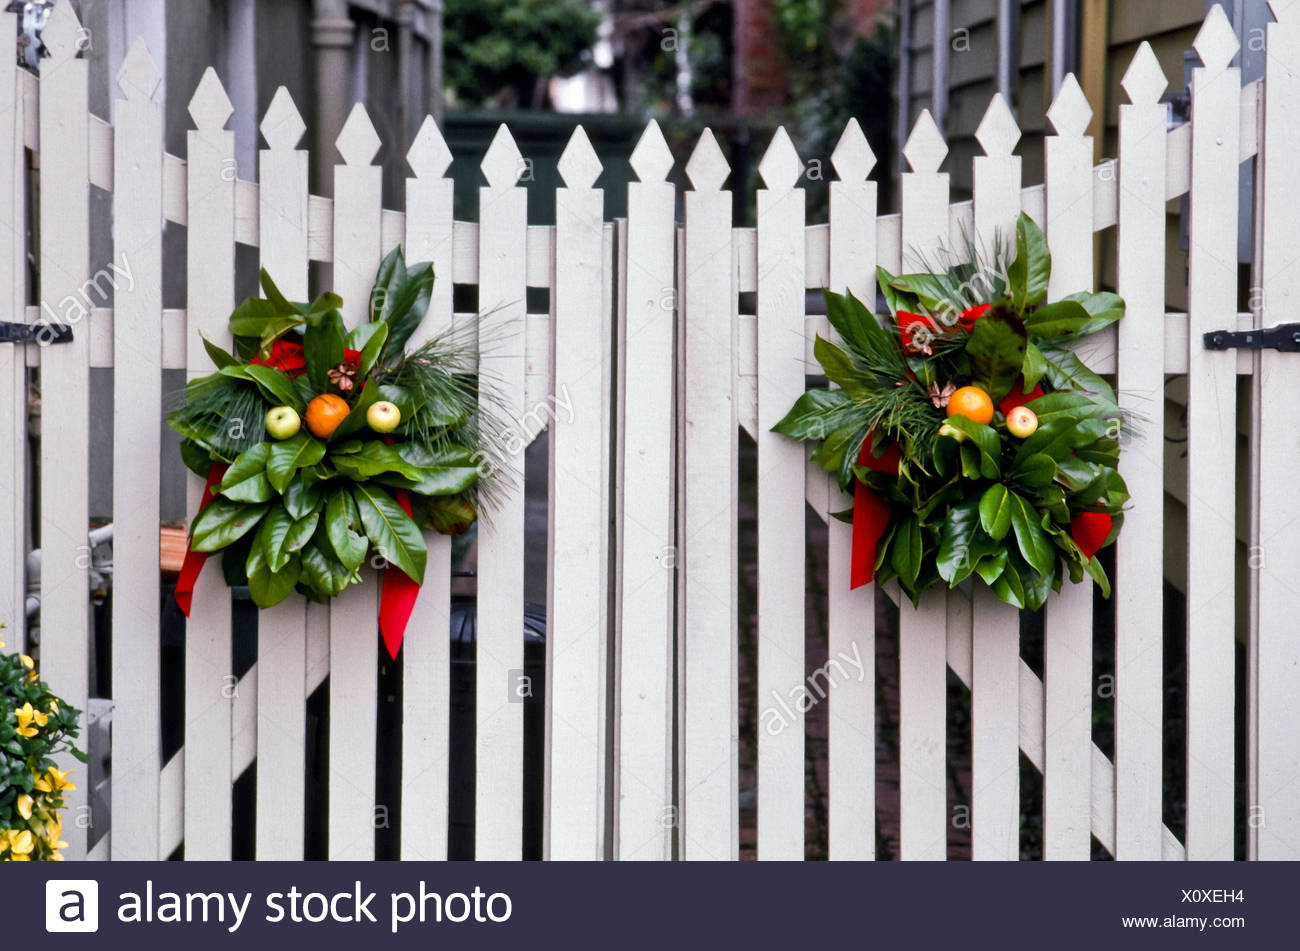 Christmas Decorations Of Greenery Wreaths Decorate On White Picket